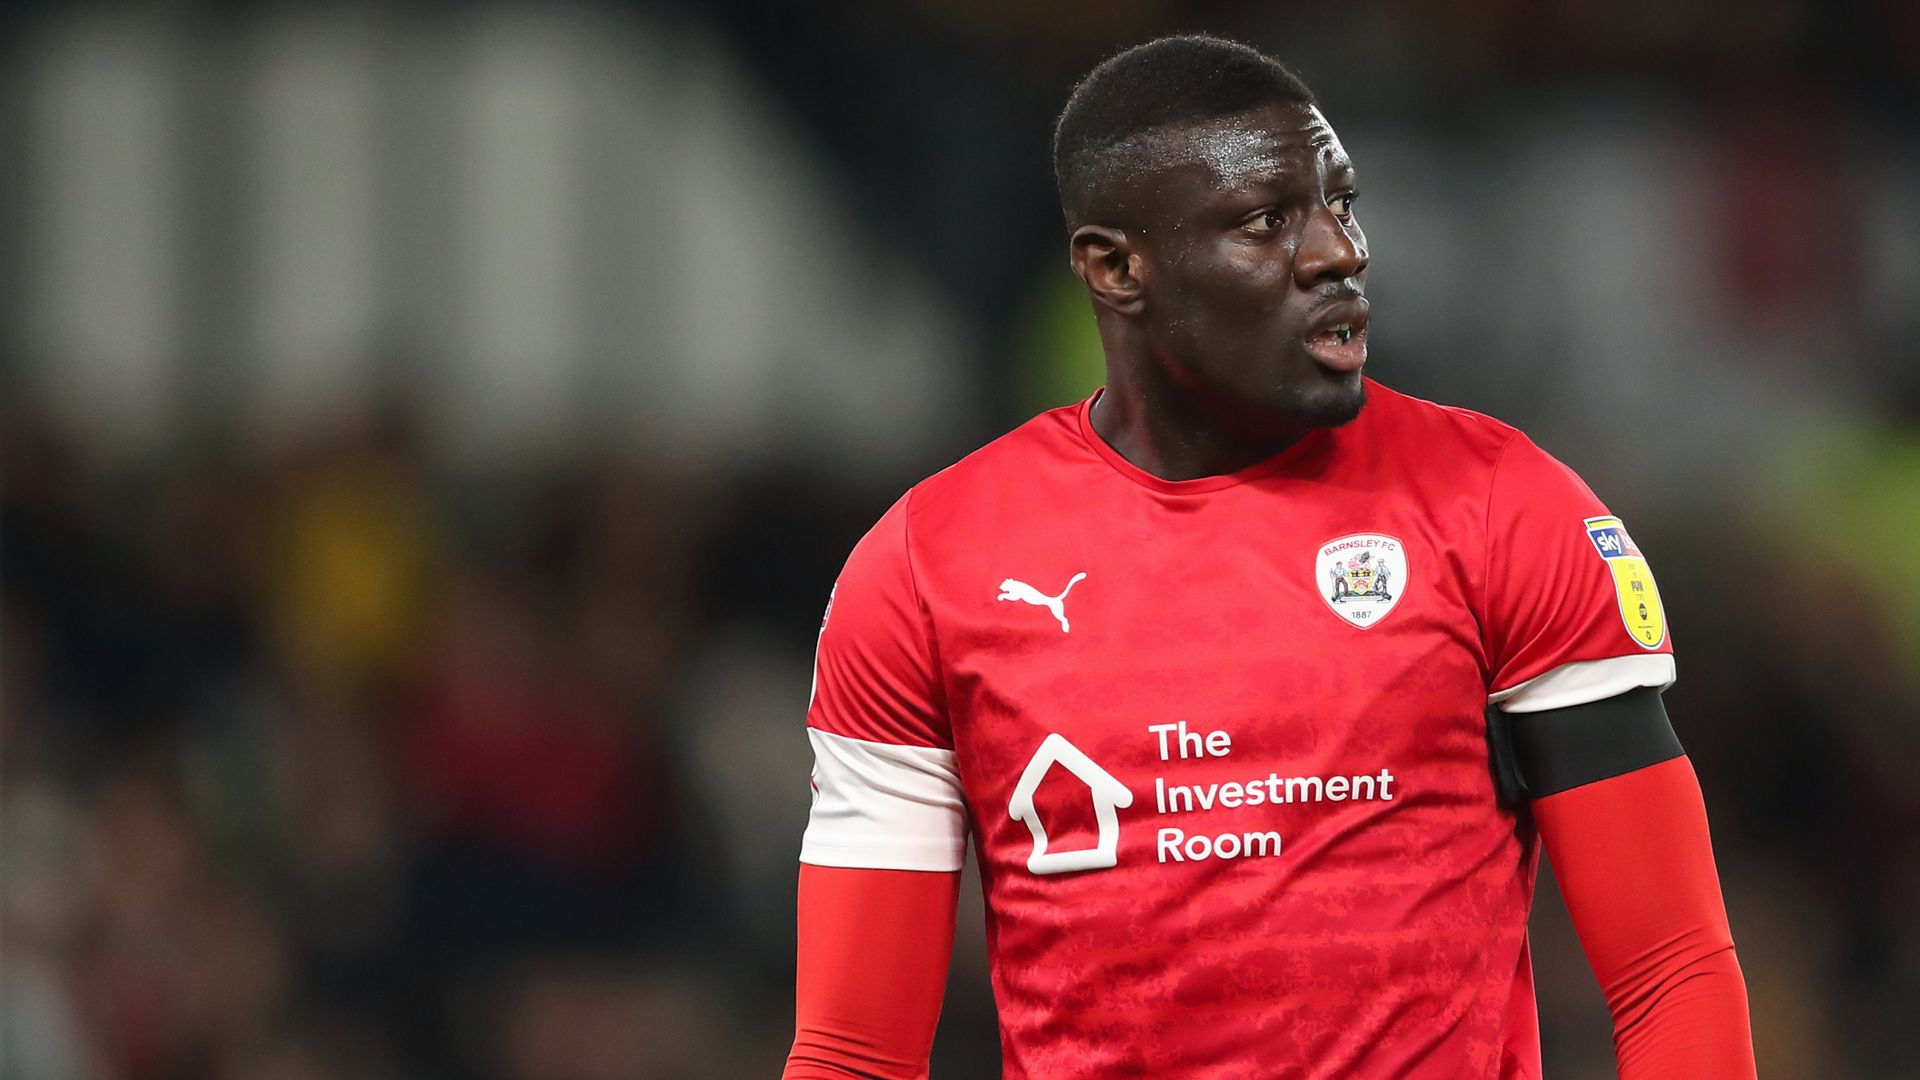 Barnsley cancel Diaby contract after doping ban